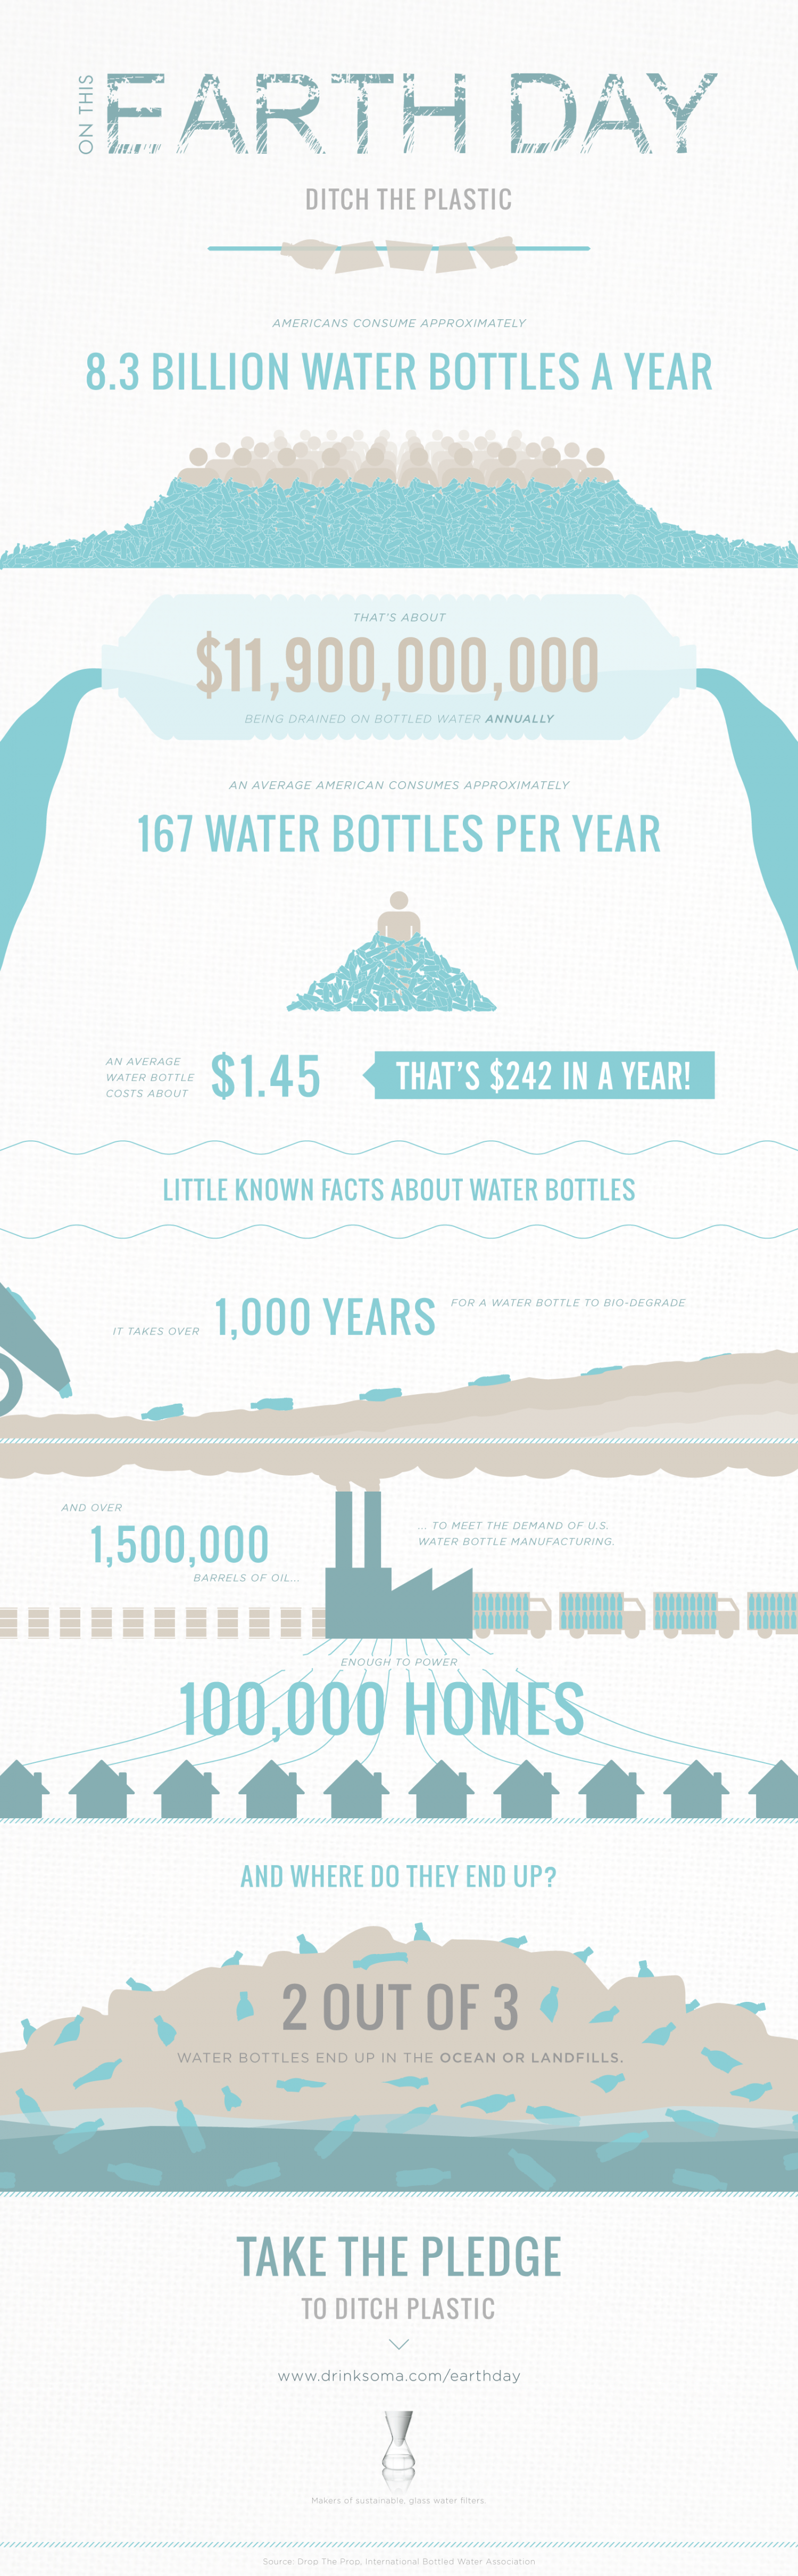 Ditch The Plastic Infographic